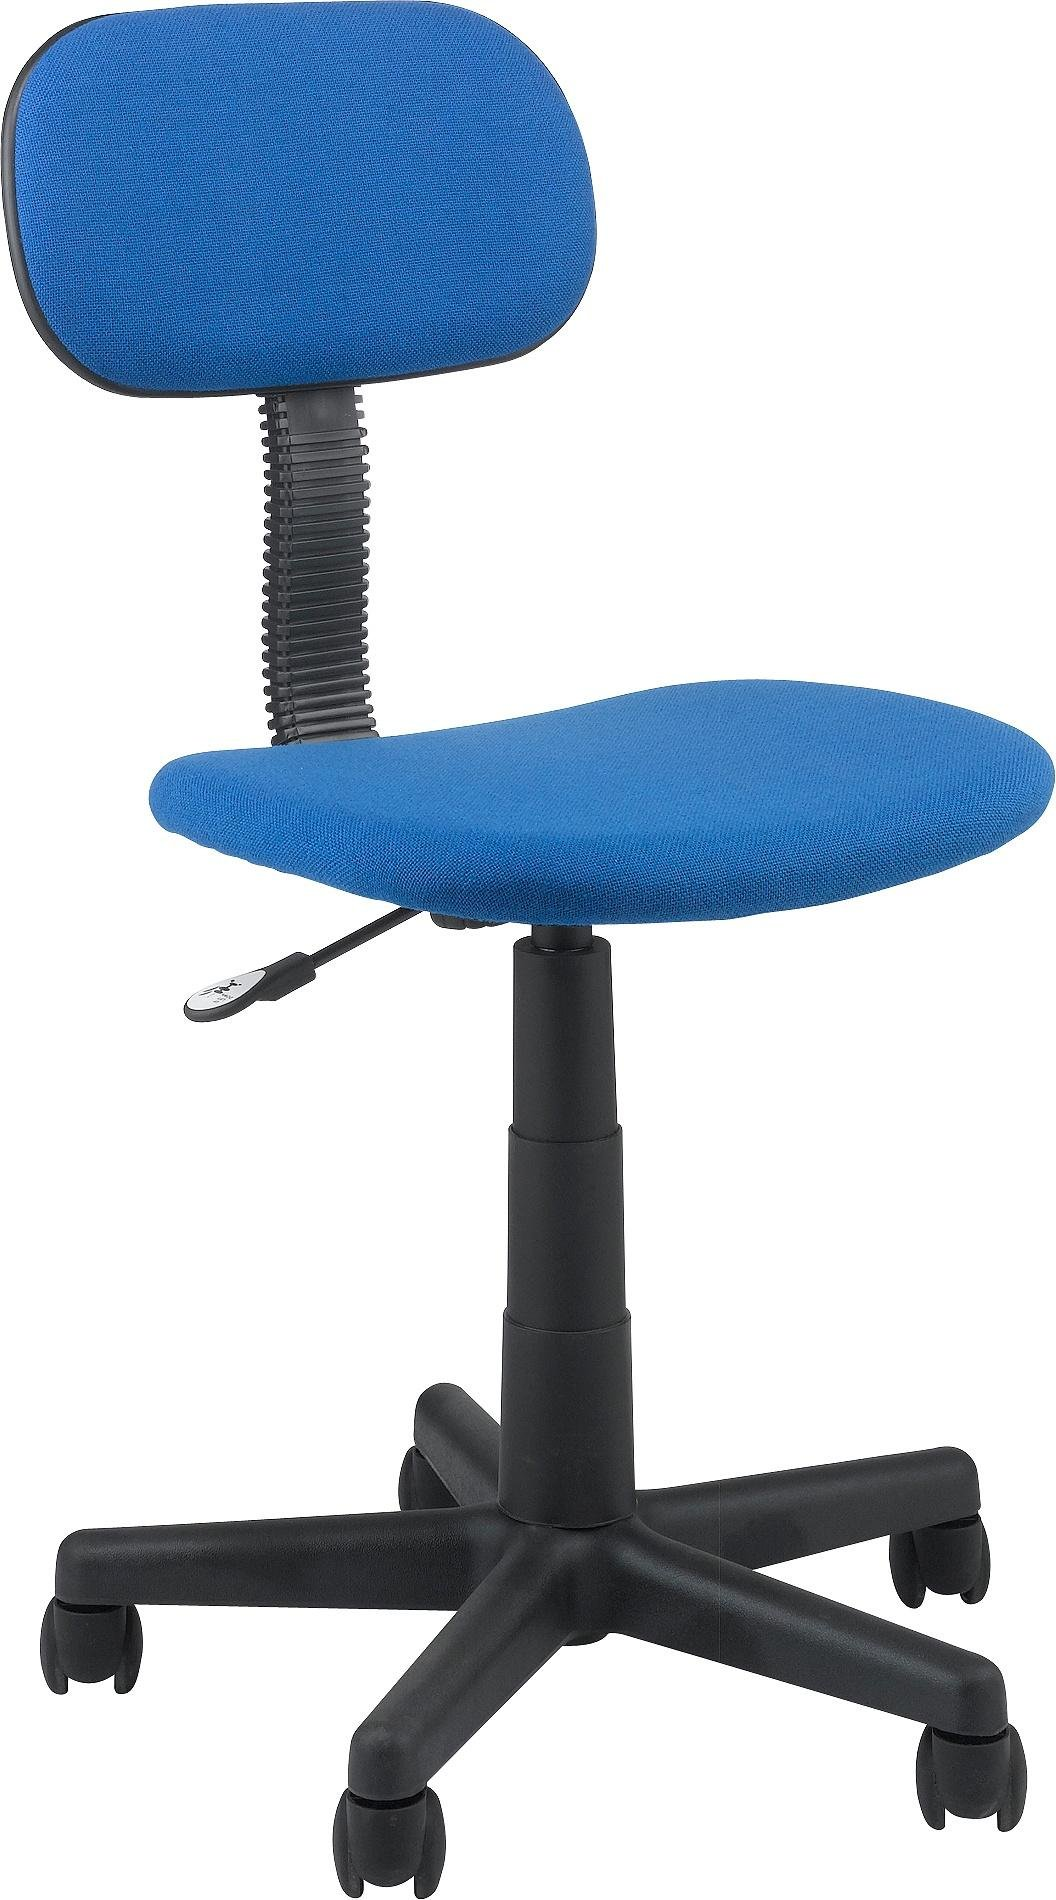 buy gas lift height adjustable office chair - blue at argos.co.uk